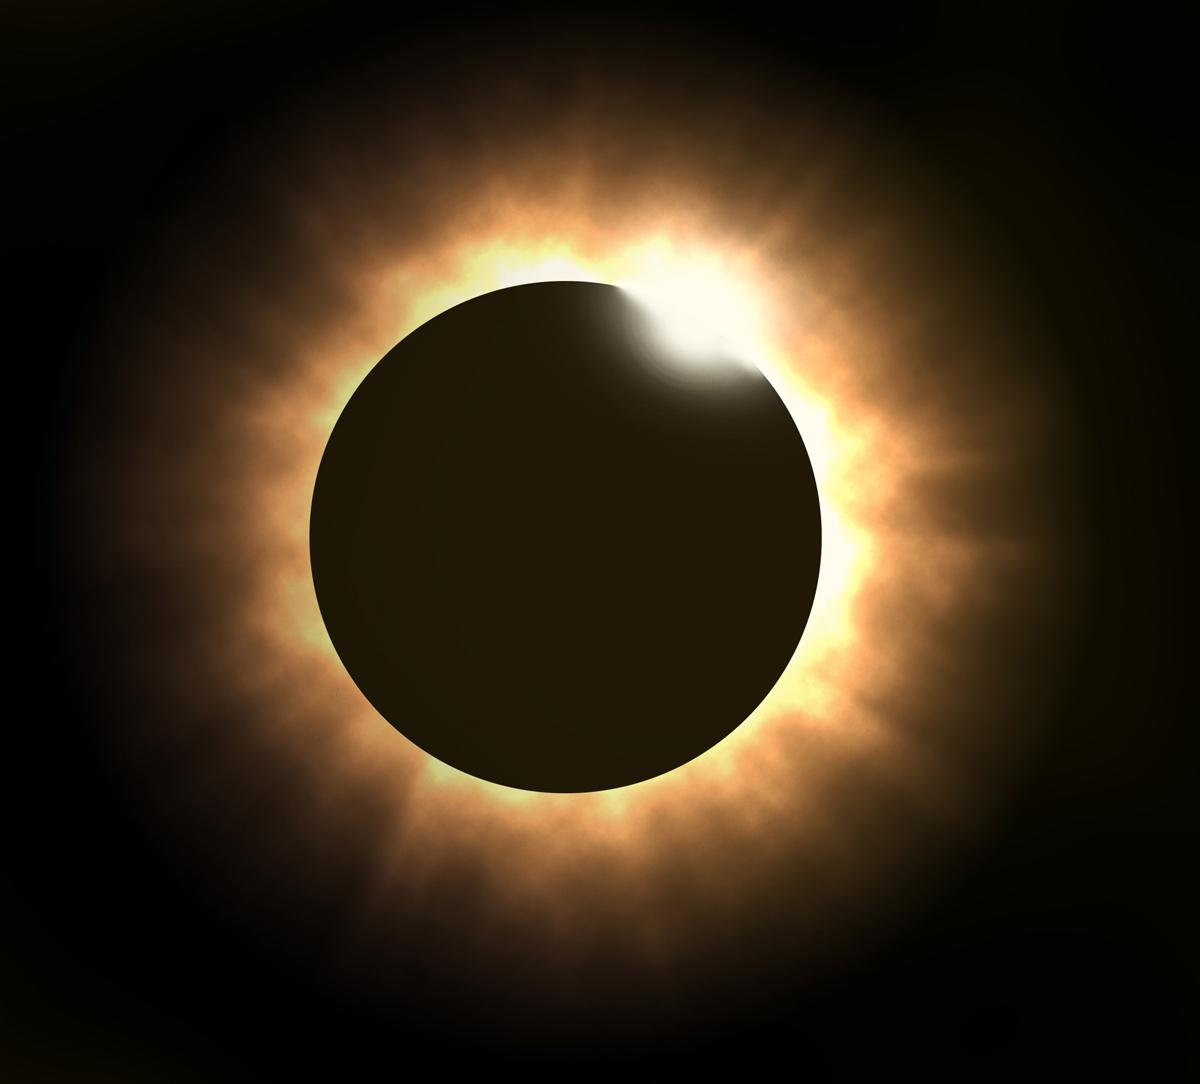 The eclipse is expected to see up to 98 per cent of the sun disappear across parts of northern Scotland